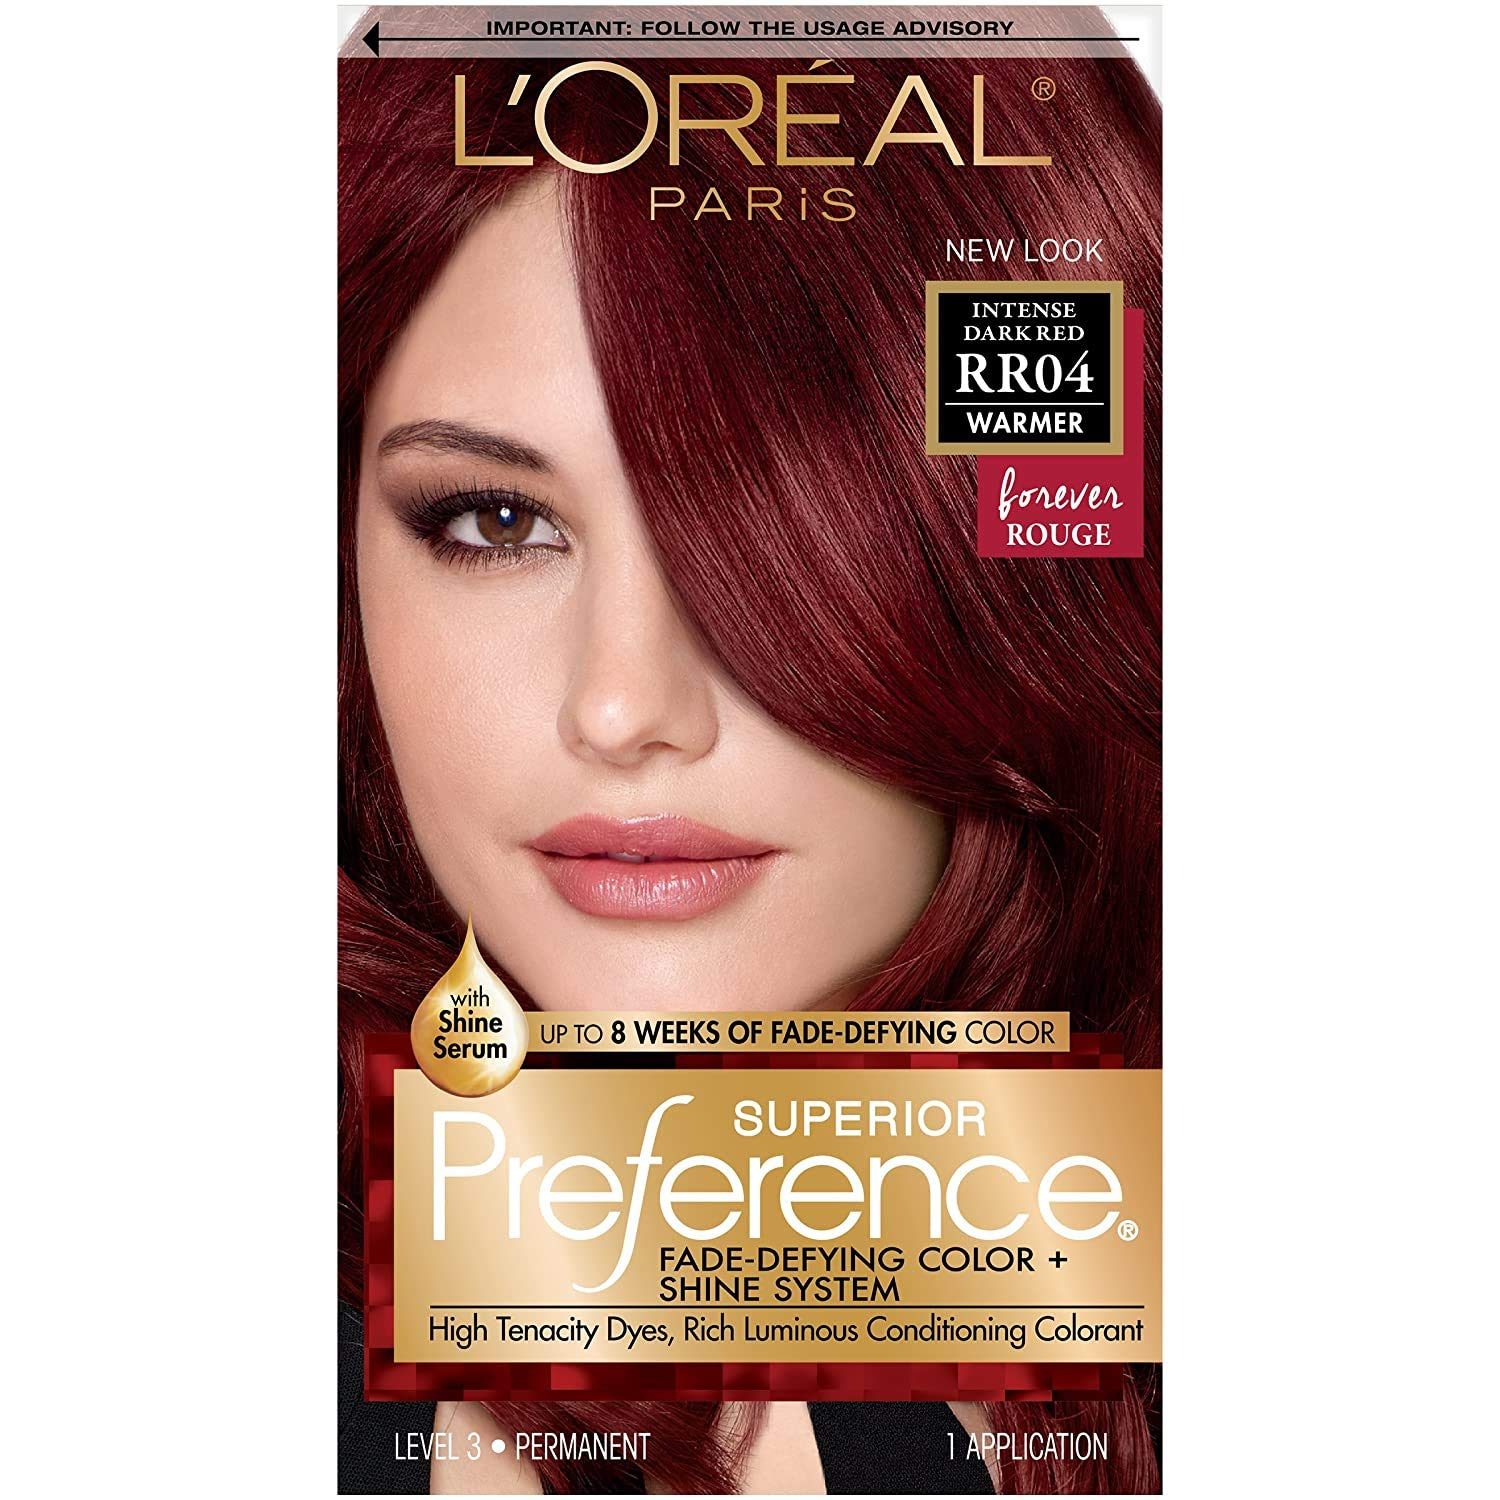 L'Oreal Paris Superior Preference Fade Defying + Shine Permanent Hair  Color, RR 9 Intense Dark Red, Pack of 9, Hair Dye